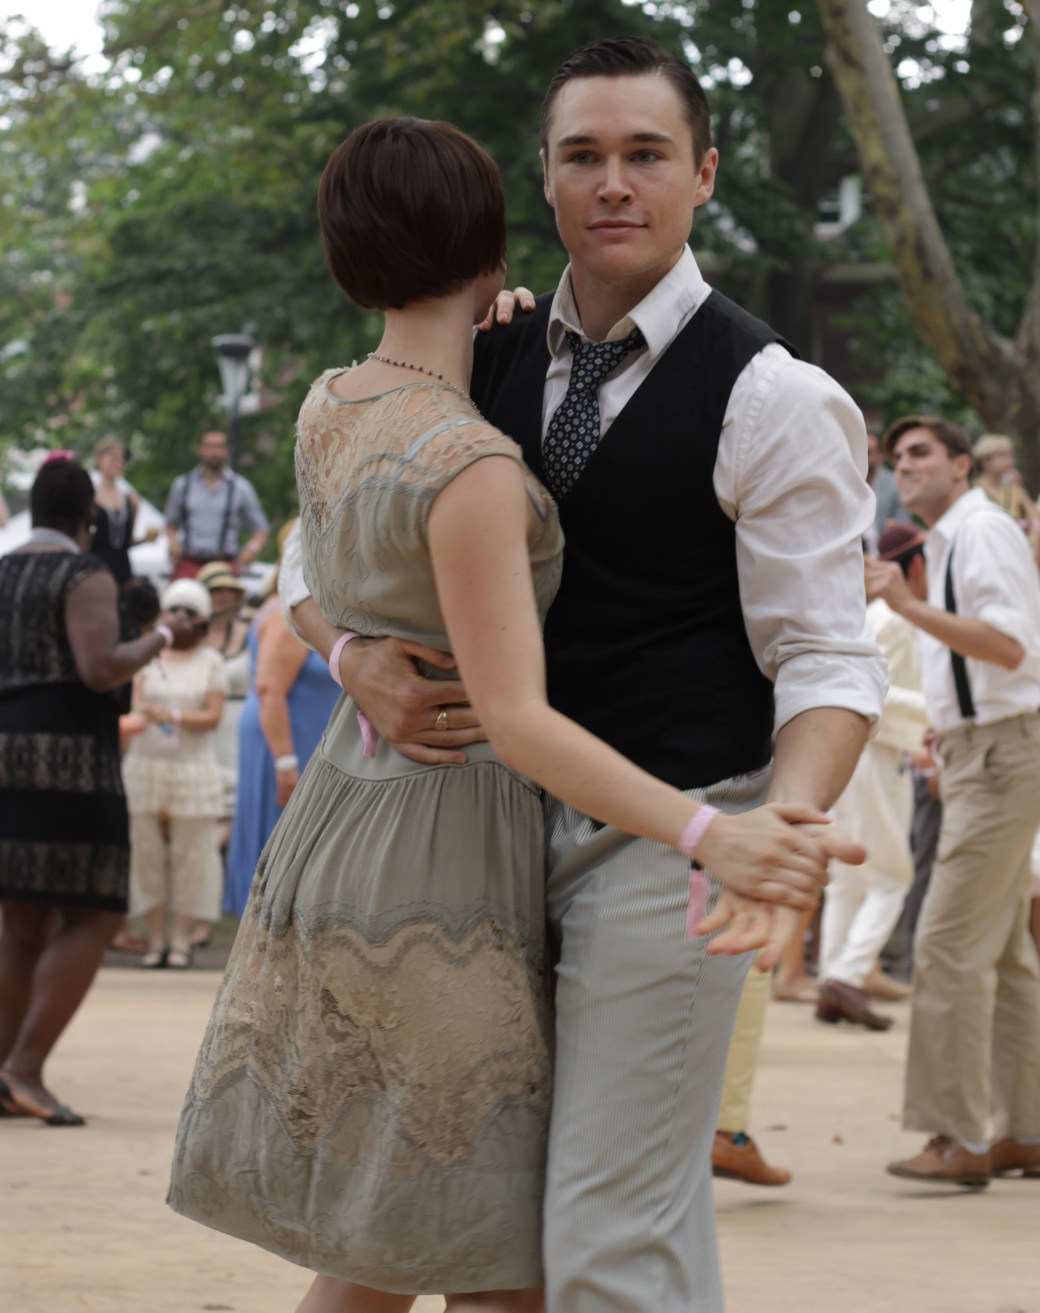 new york city governors island jazz age lawn party august 17 2014 85